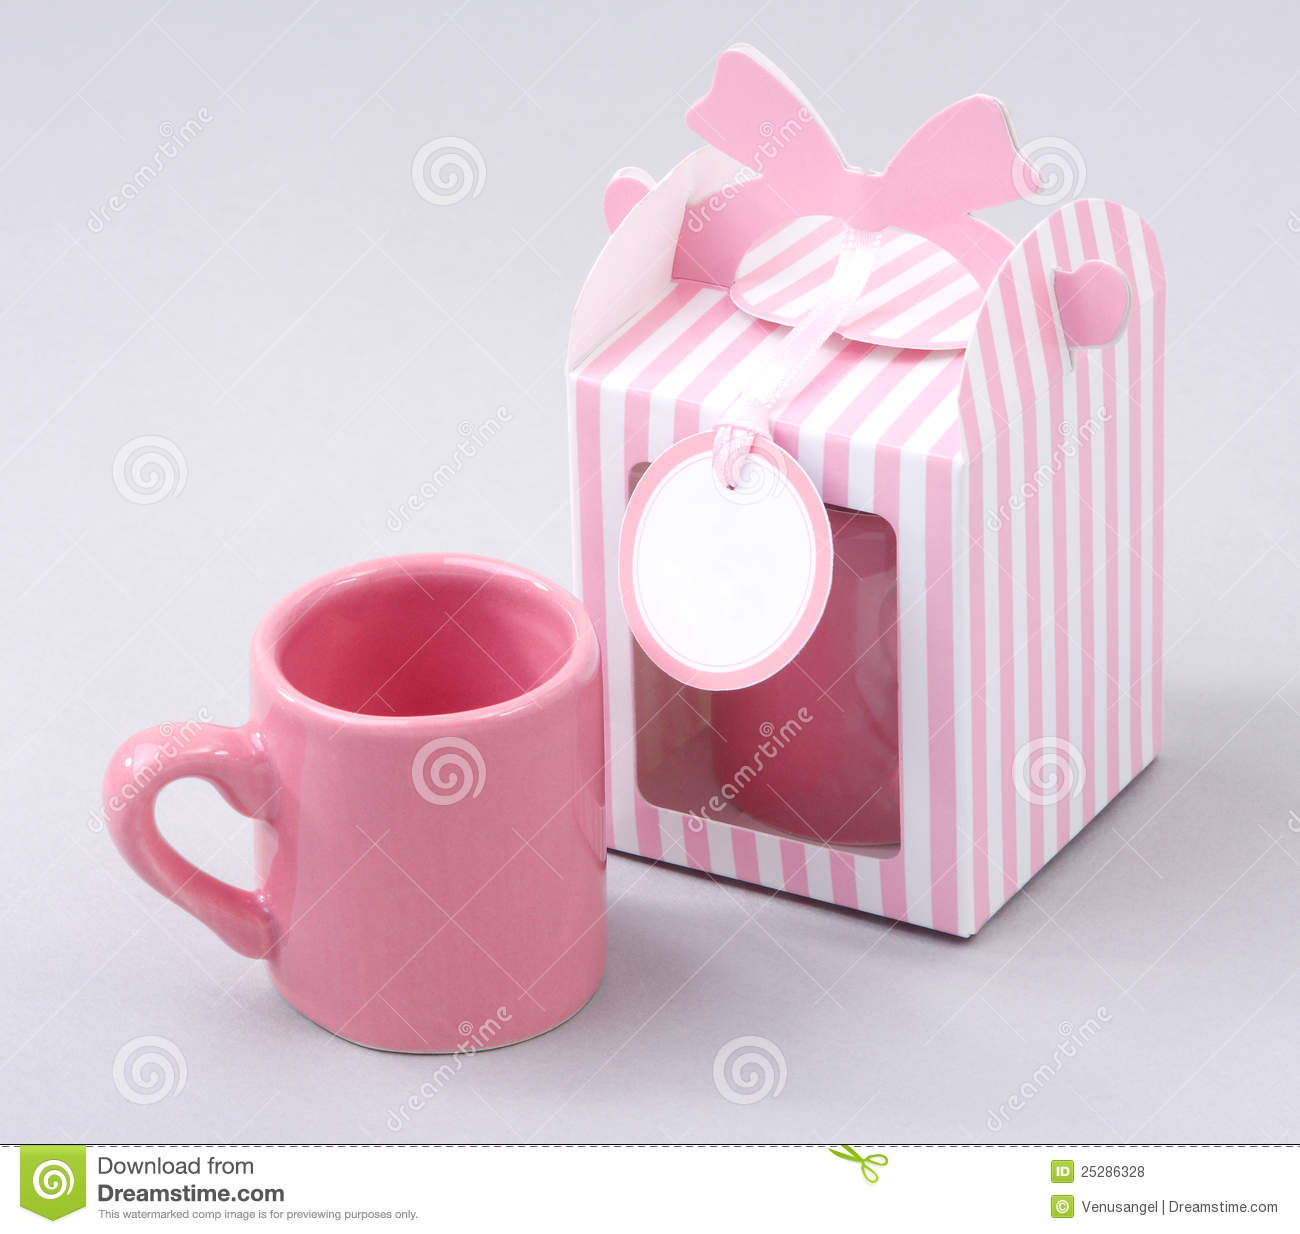 Coffee Mug With Gift Box Stock Photo 25286328 - Megapixl